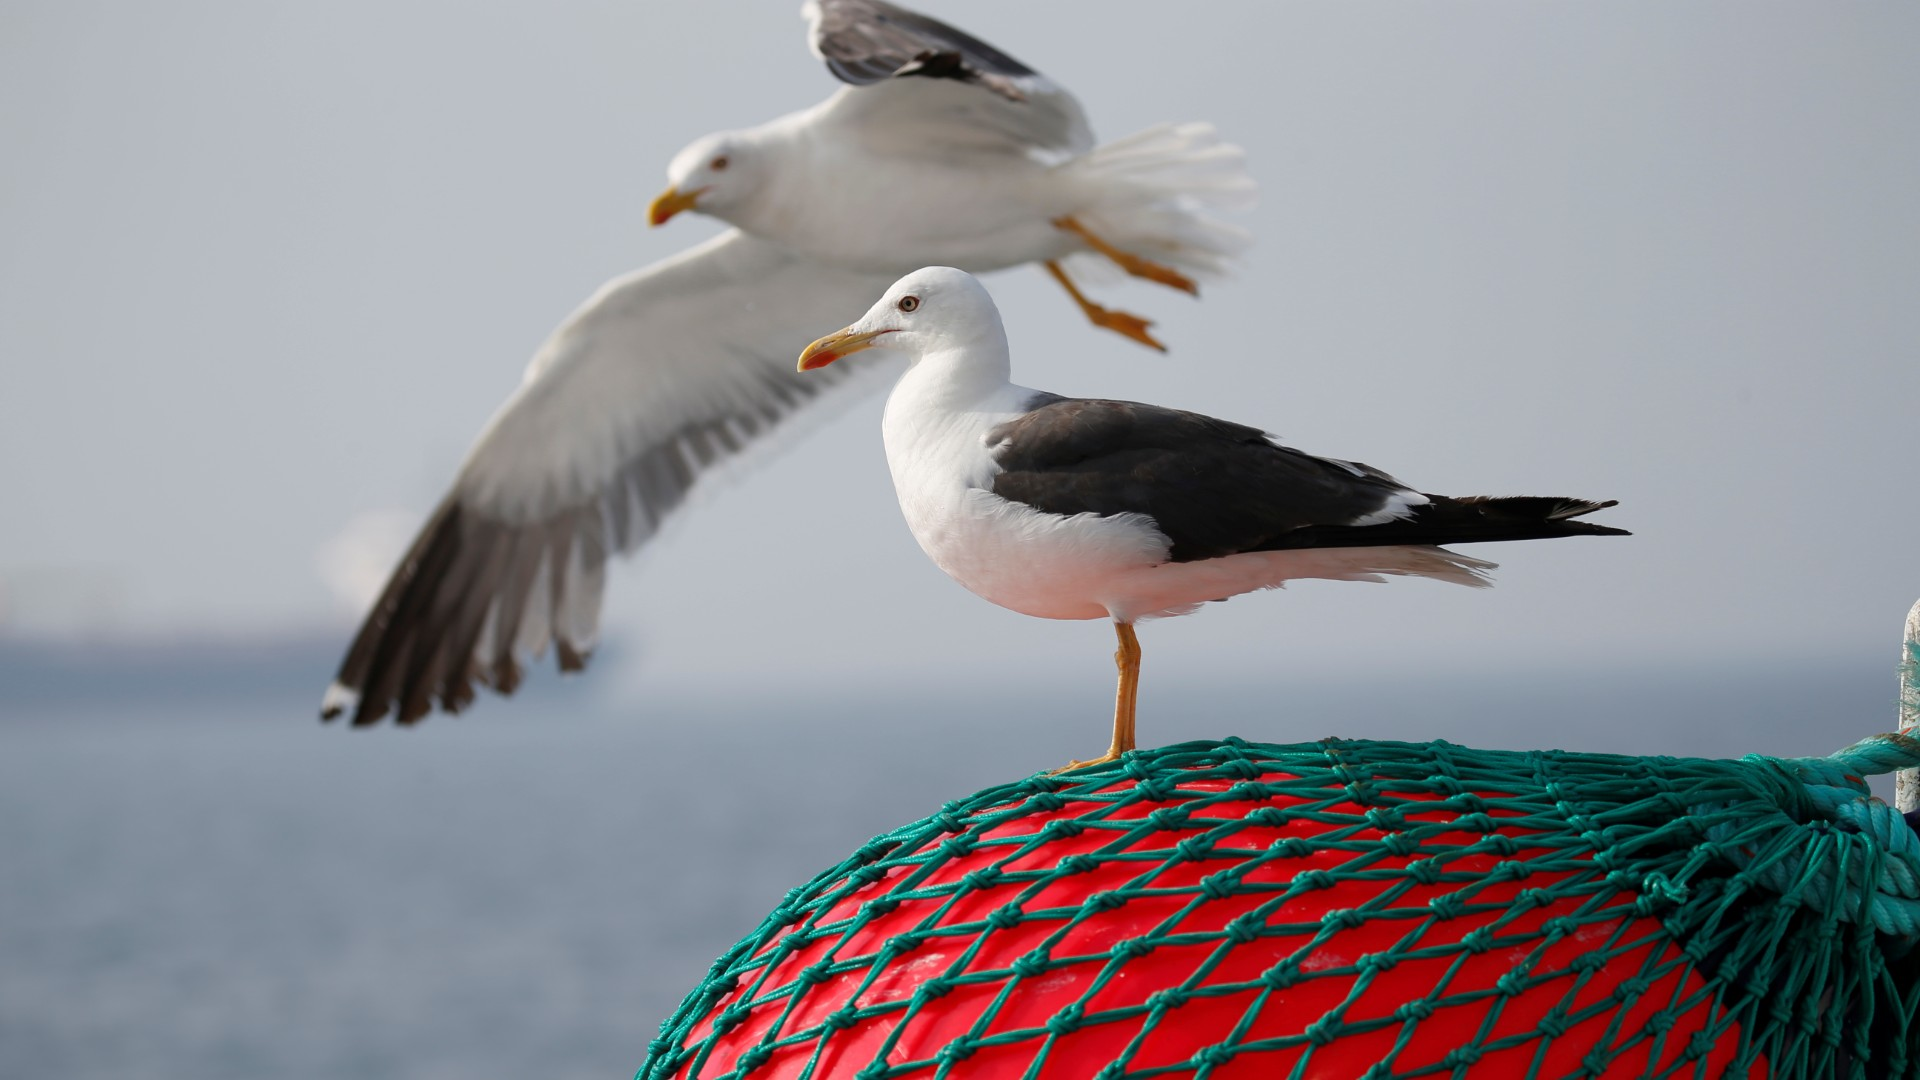 Species of gull facing extinction in Finland – Eye on the Arctic